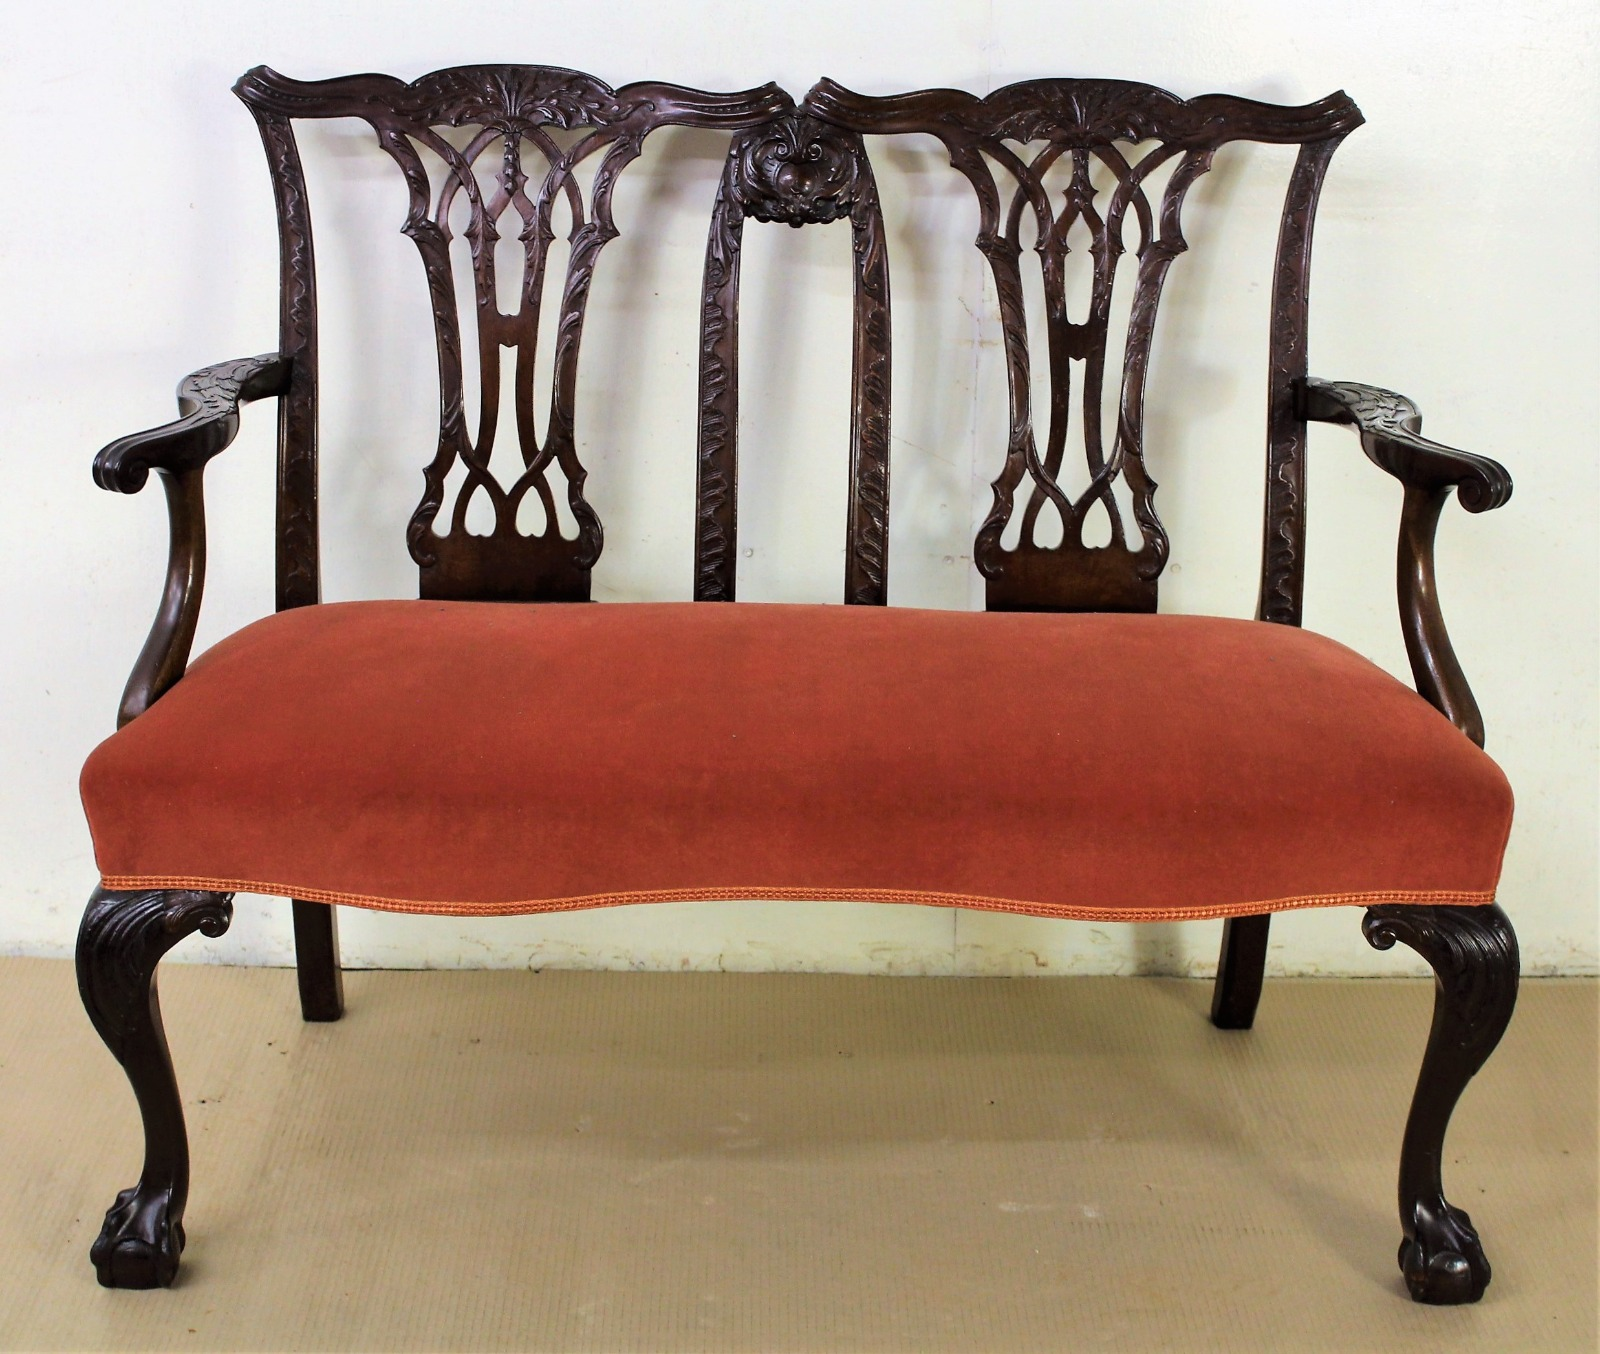 Full Size of Chippendale Sofa Design Mahogany Settee Bench C1890 La 1119 Patchwork Lila München Mit Schlaffunktion Federkern Big Xxl Grau Relaxfunktion Tom Tailor Sofa Chippendale Sofa